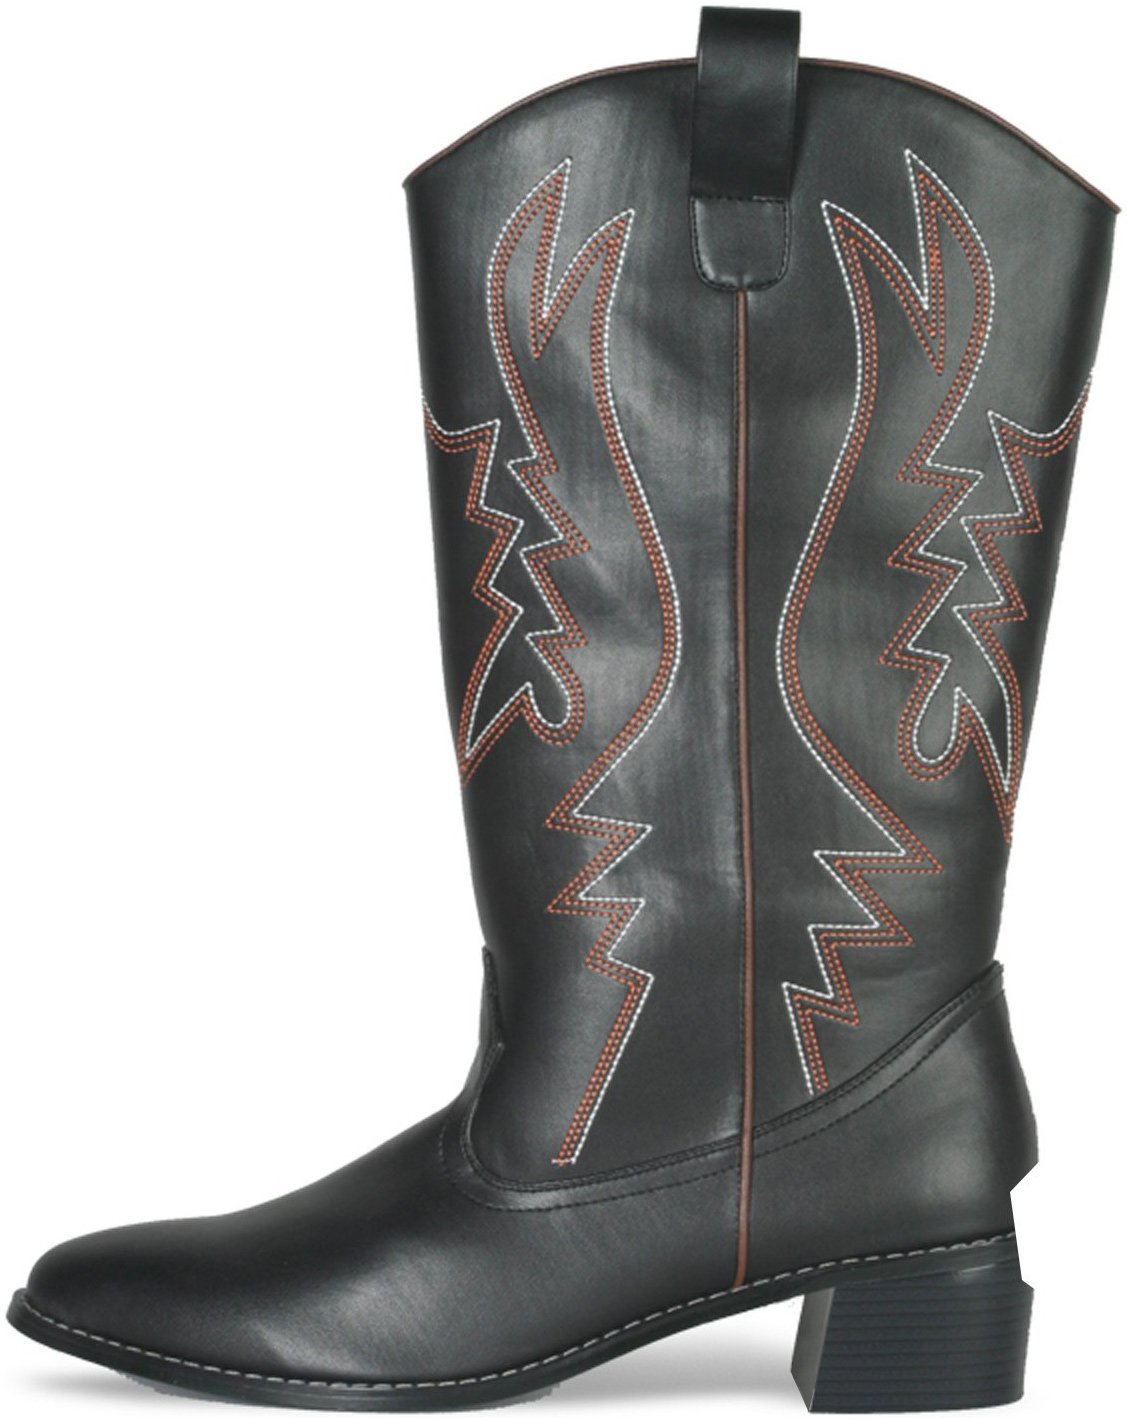 Western Cowboy (Black) Male Adult Boots